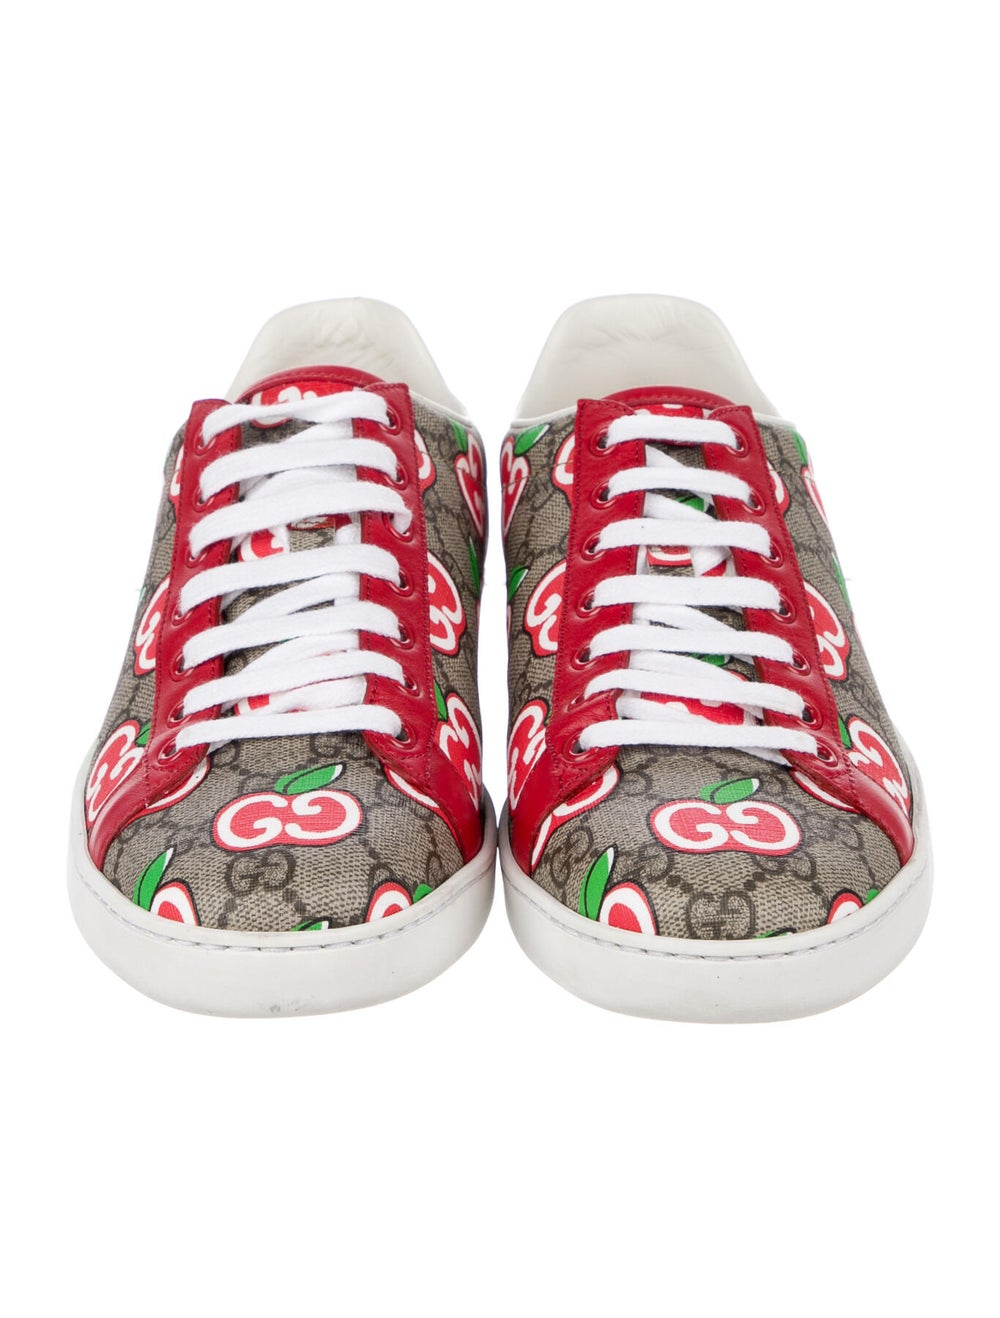 Gucci GG Apple Sneakers Sneakers - image 3